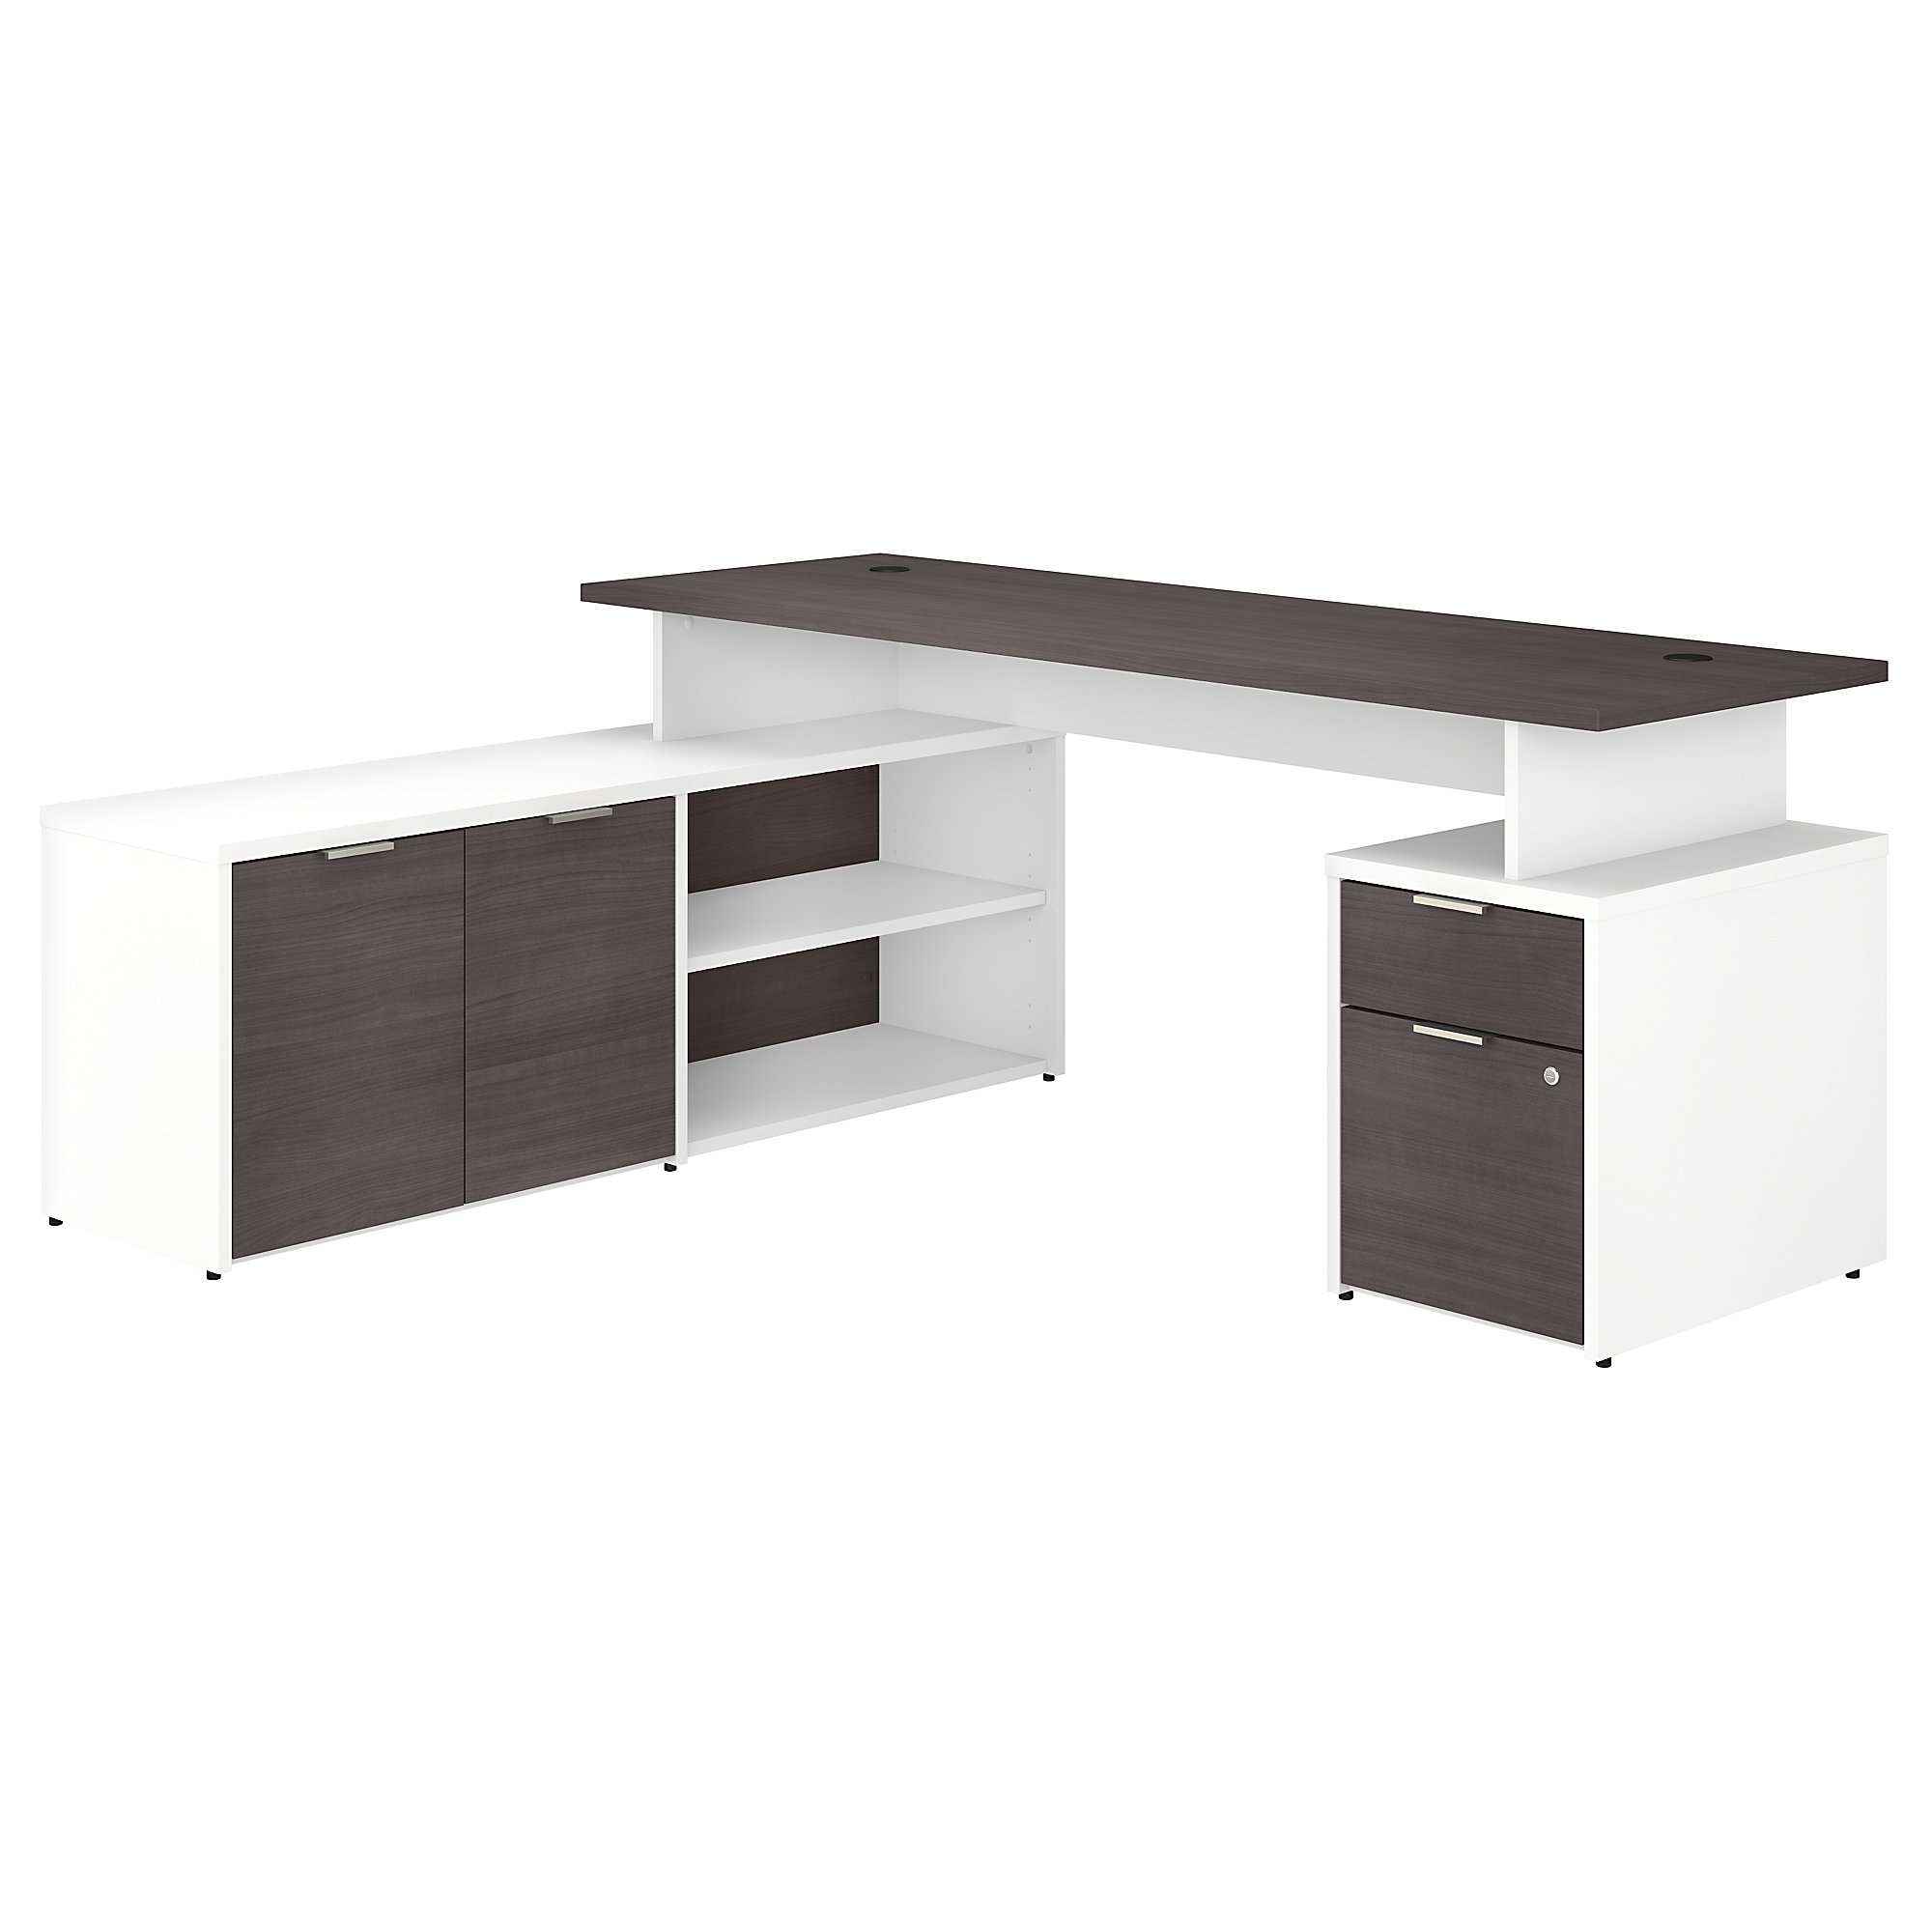 jtn009 gray and white jamestown desk